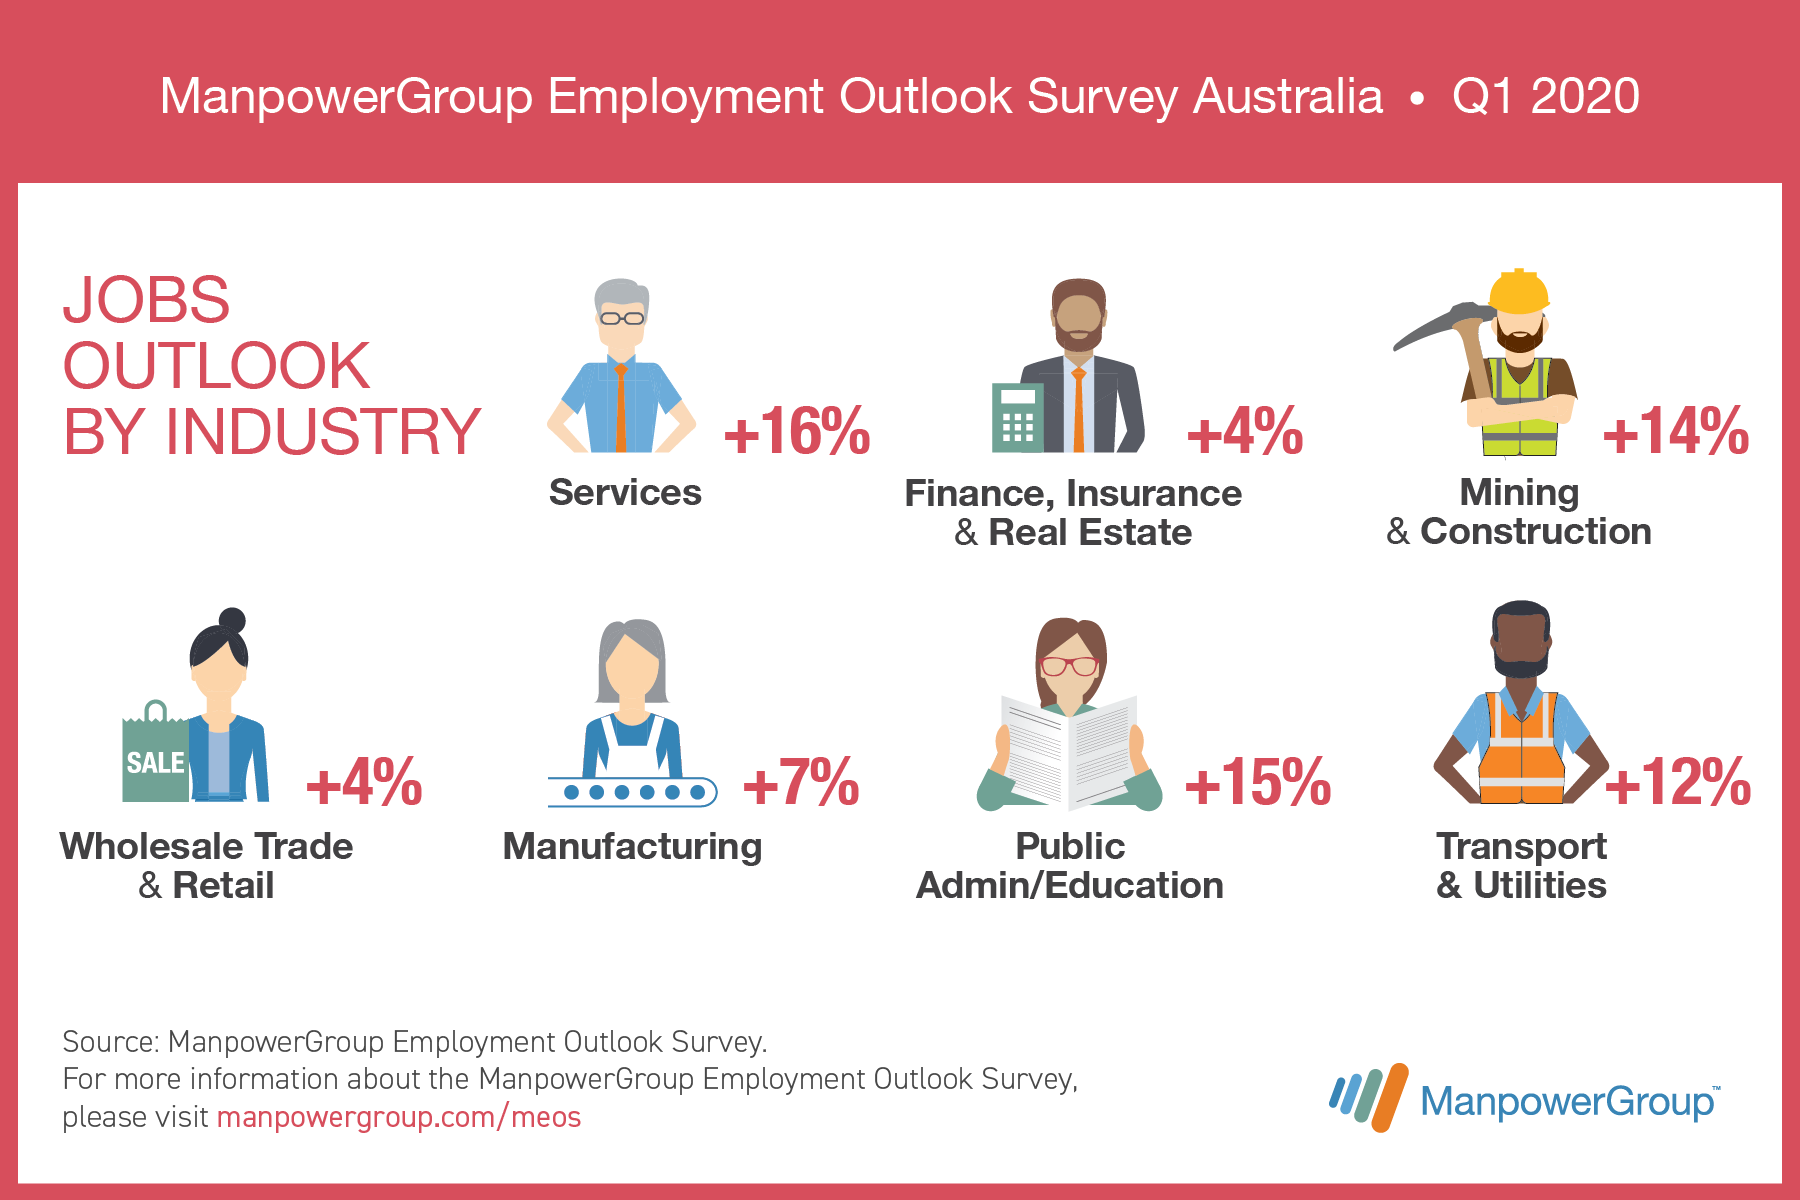 MEOS_Q1_Jobs_outlook_industry_Li_1800x1200_AU